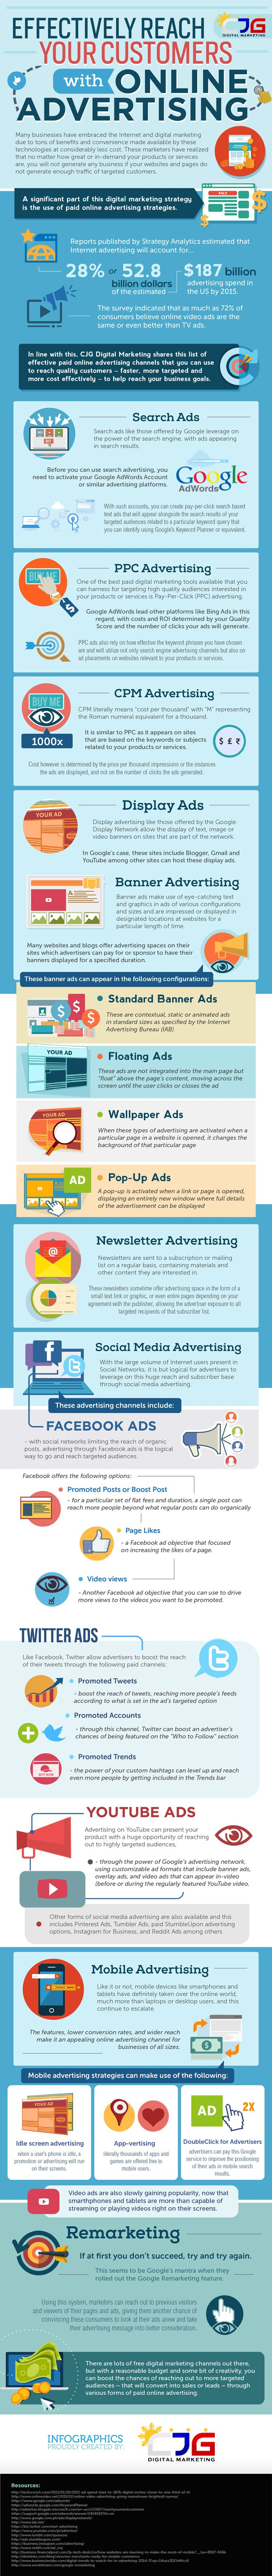 Effectively Reach Your Customers with Online Advertising [Infographic] | via @borntobesocial